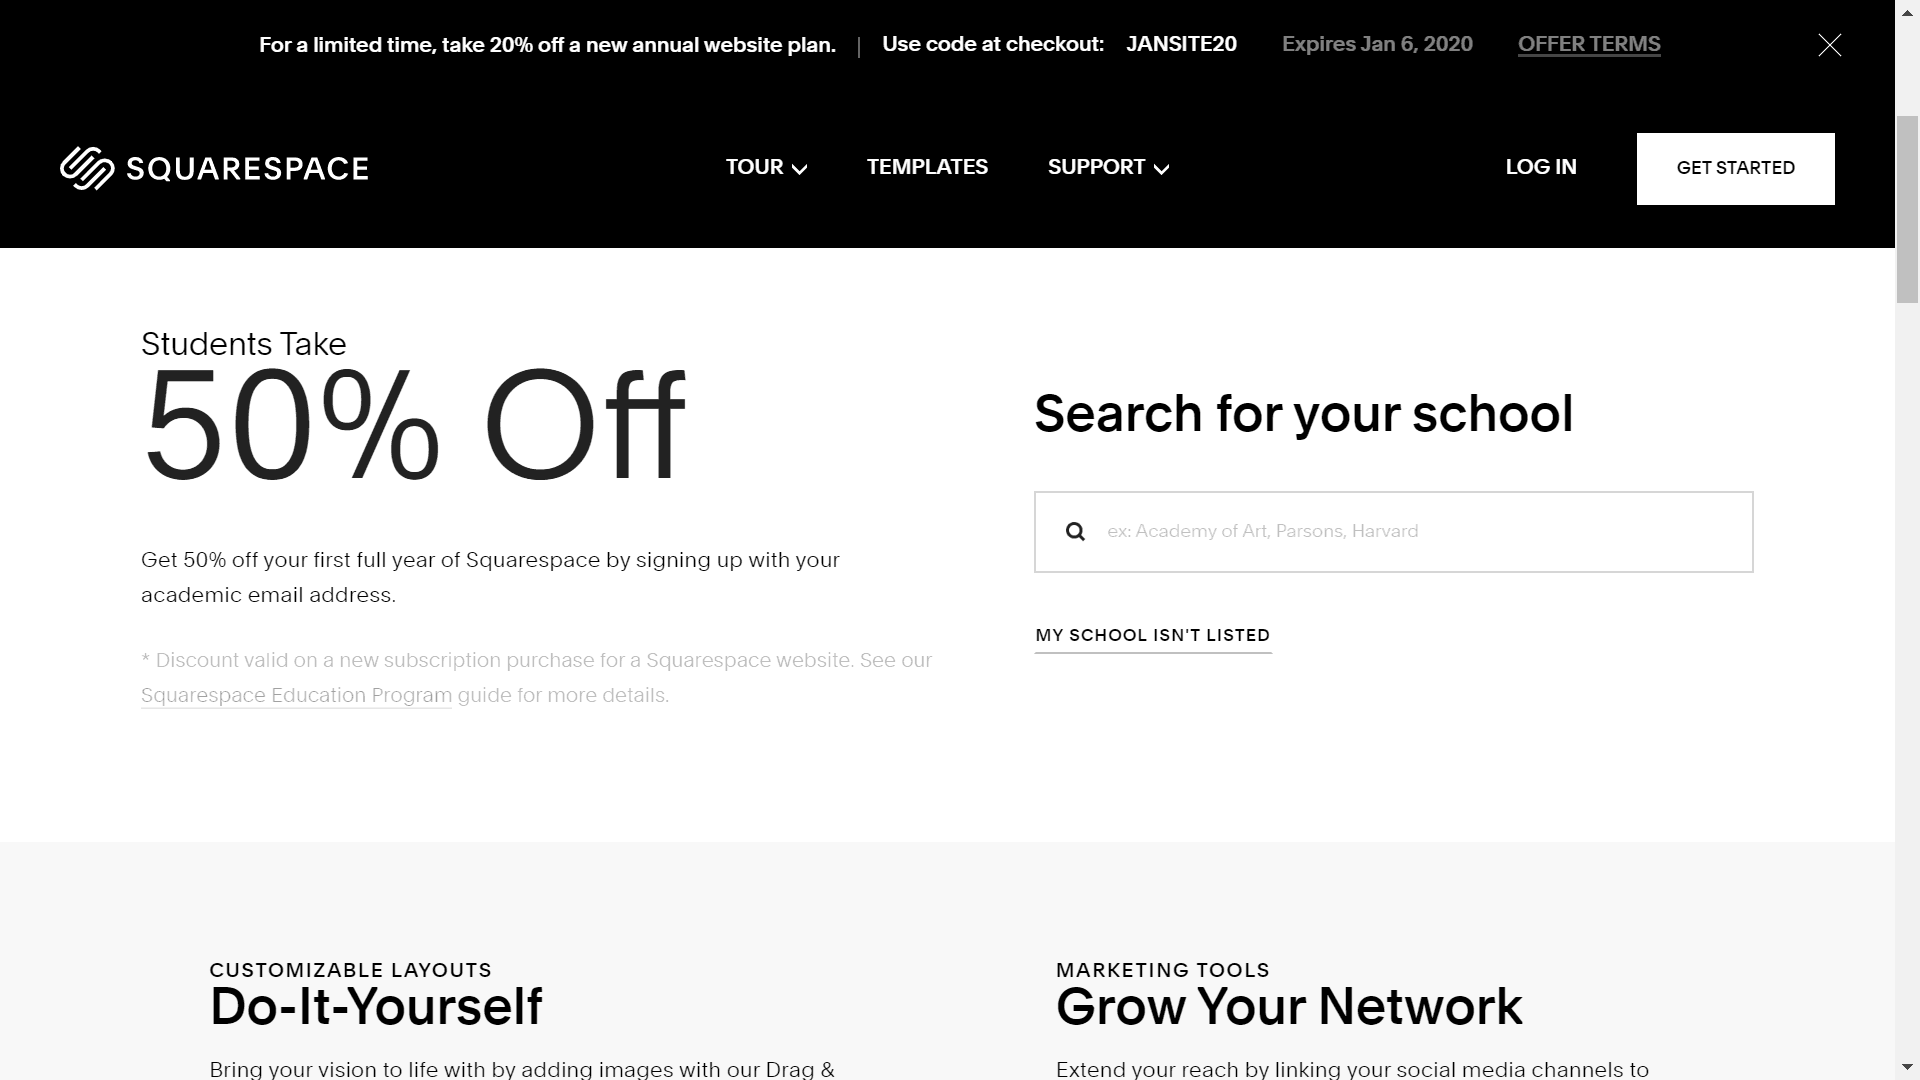 Squarespace discount for students and teachers